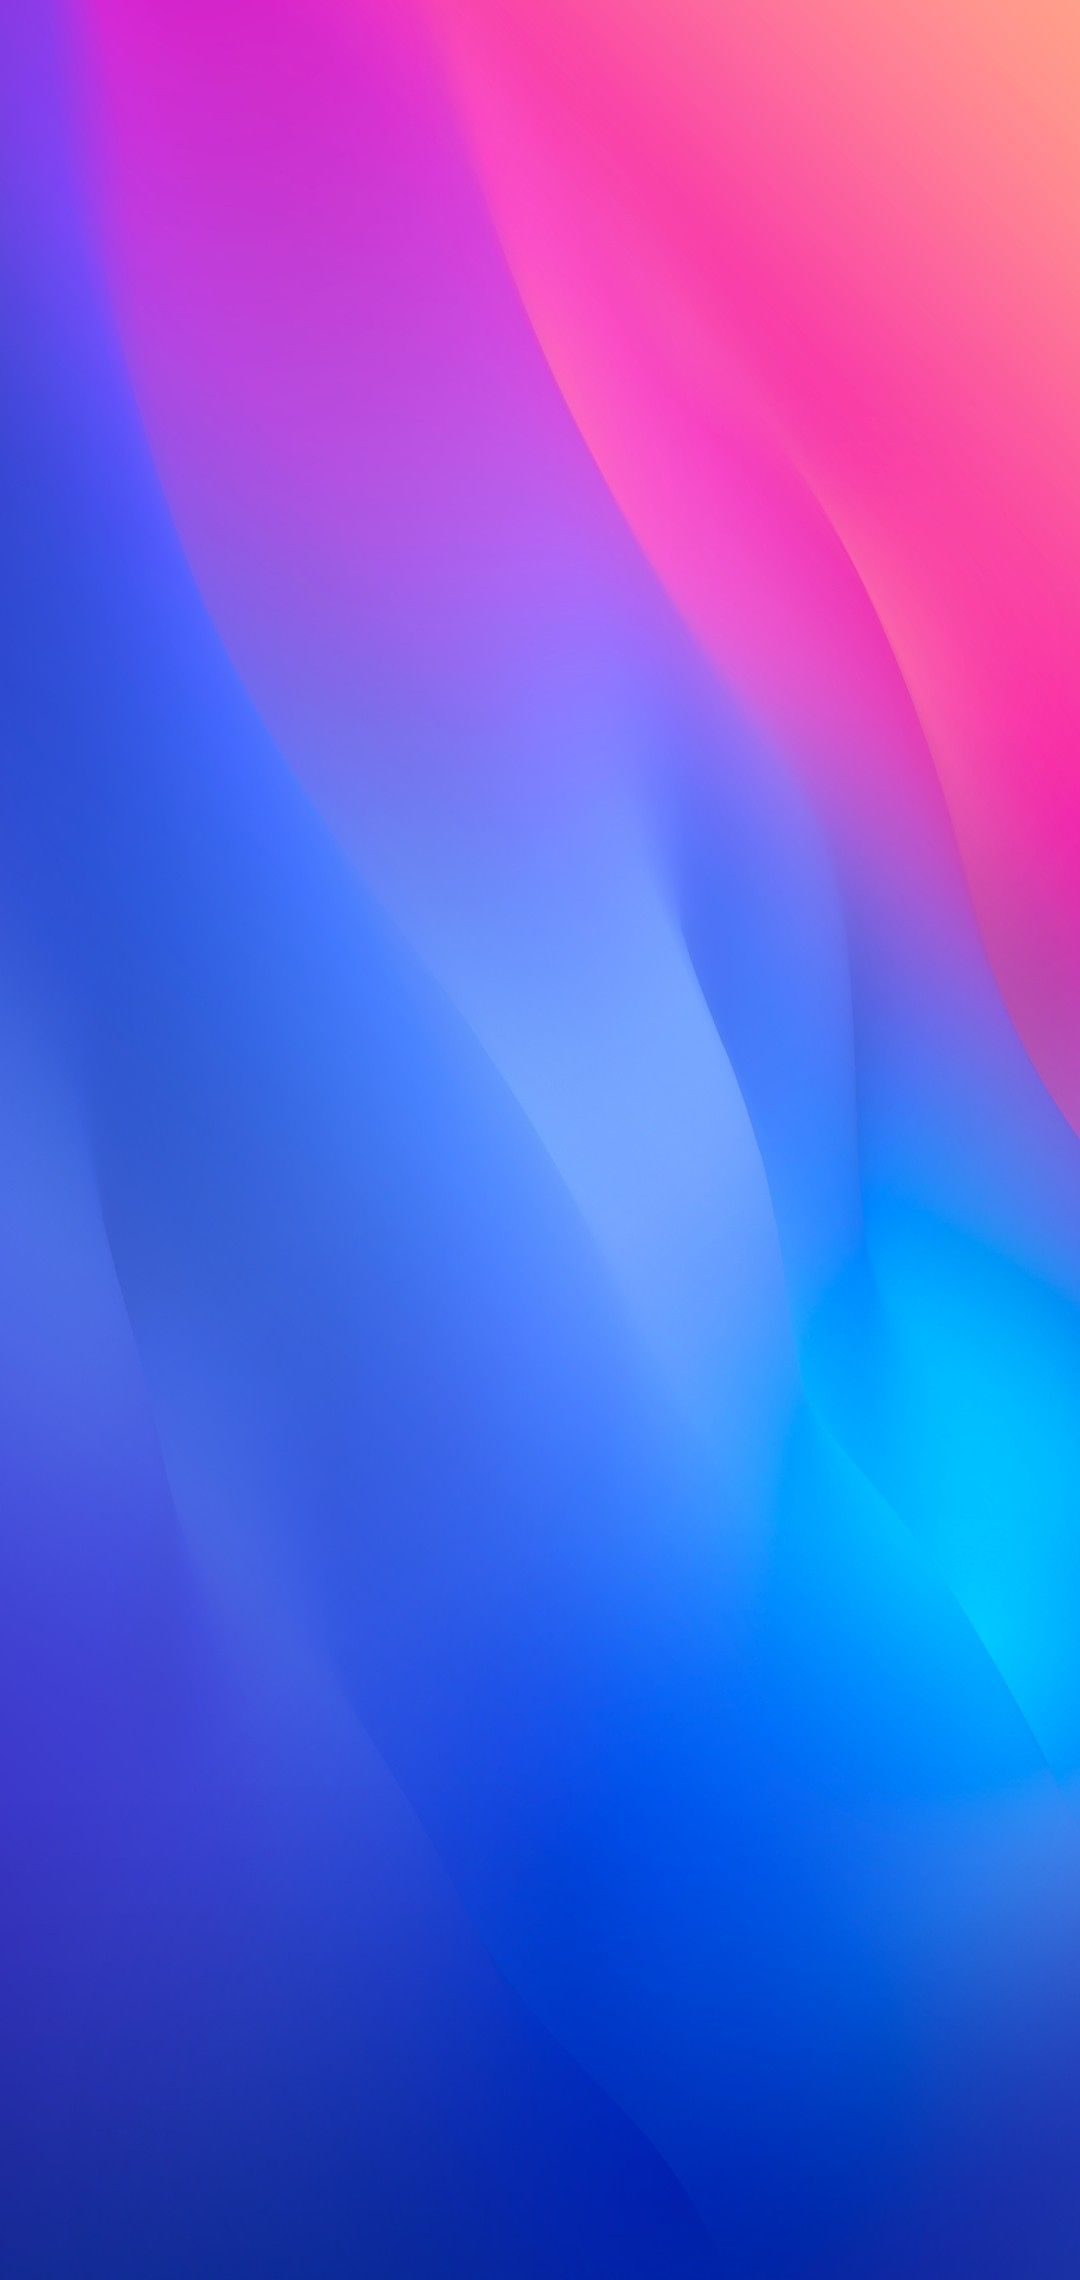 Ios 12 Iphone X Blue Pink Clean Simple Abstract Apple Wallpaper Iphone 8 Clean Beauty Col Pink Wallpaper Iphone Iphone Wallpaper Ios Ios Wallpapers